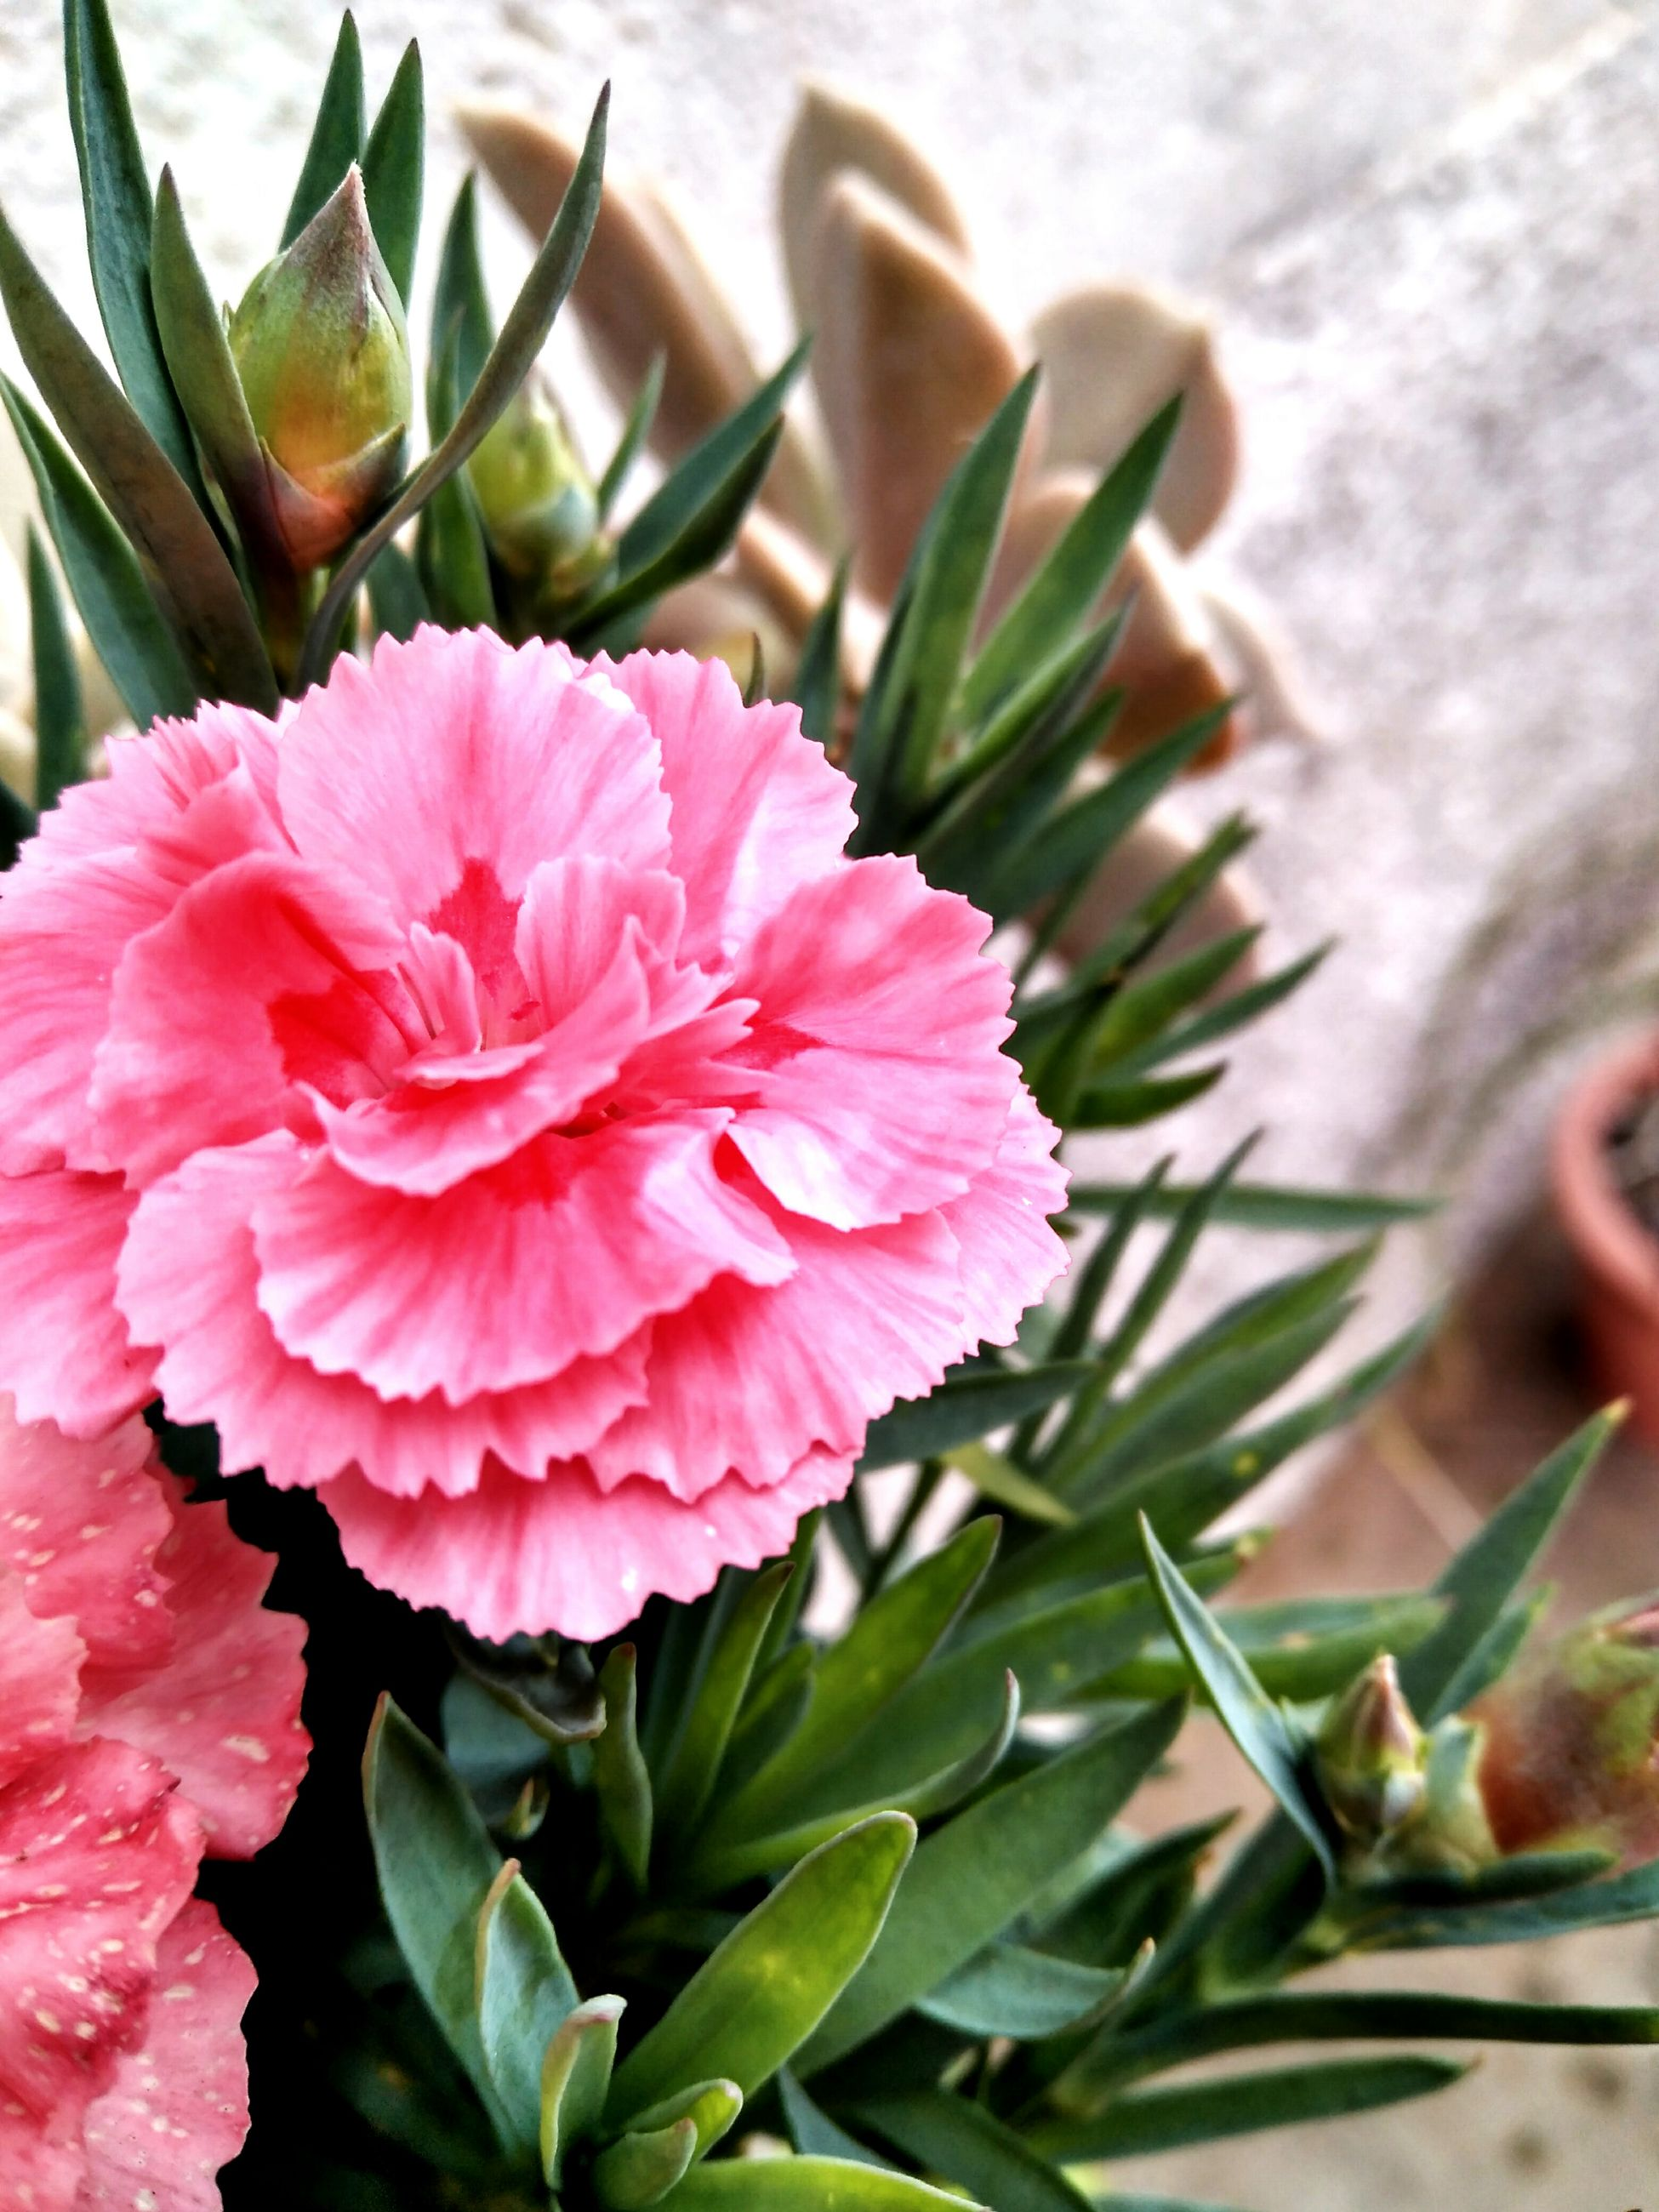 flower, beauty in nature, petal, nature, growth, freshness, plant, pink color, close-up, flower head, fragility, leaf, day, outdoors, no people